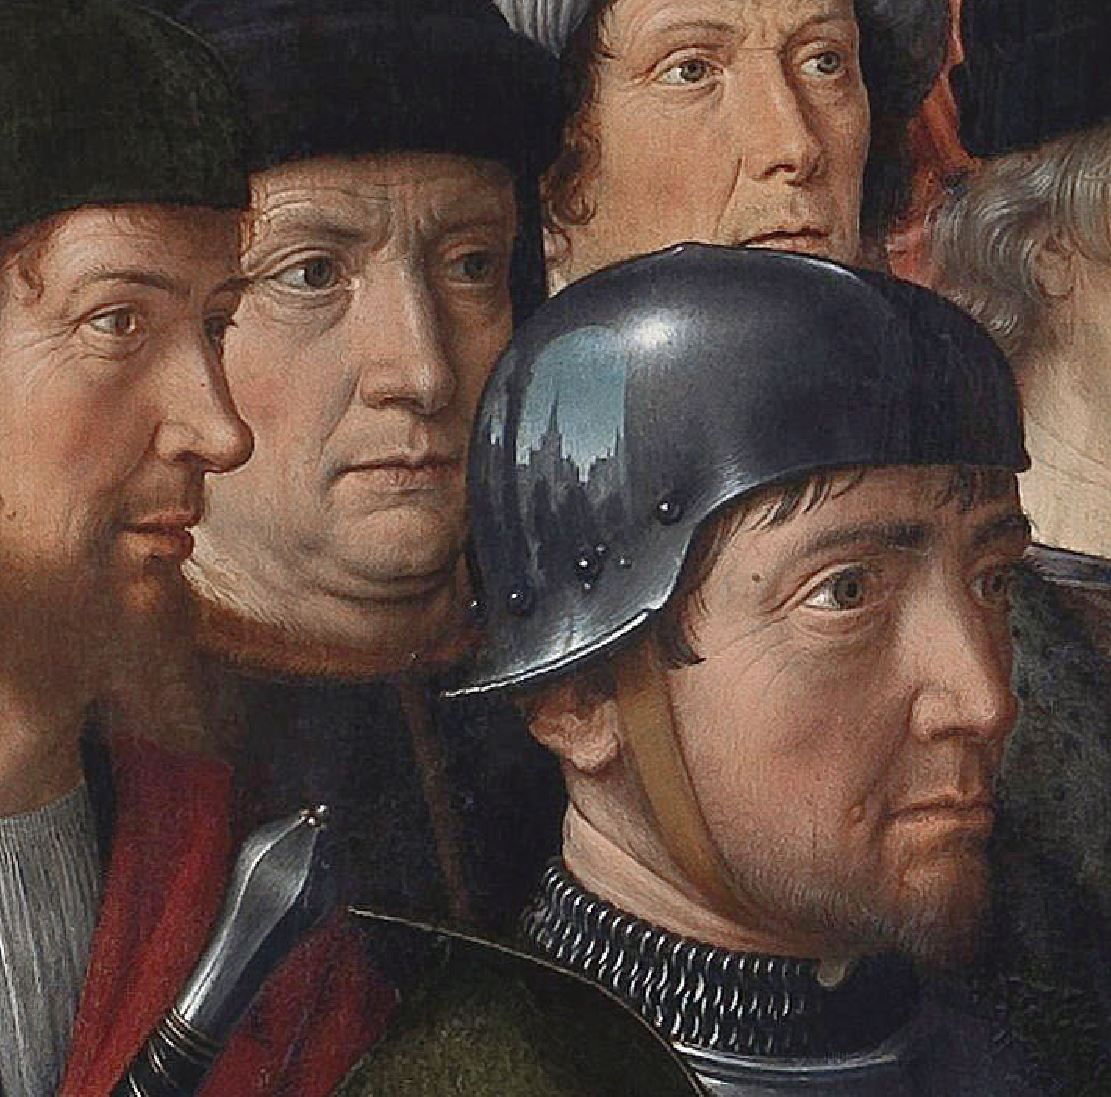 1498 Gerard_David _The_Judgment_of_Cambyses,_panel_1_-_The_capture_of_the_corrupt_judge_Sisamnes detail